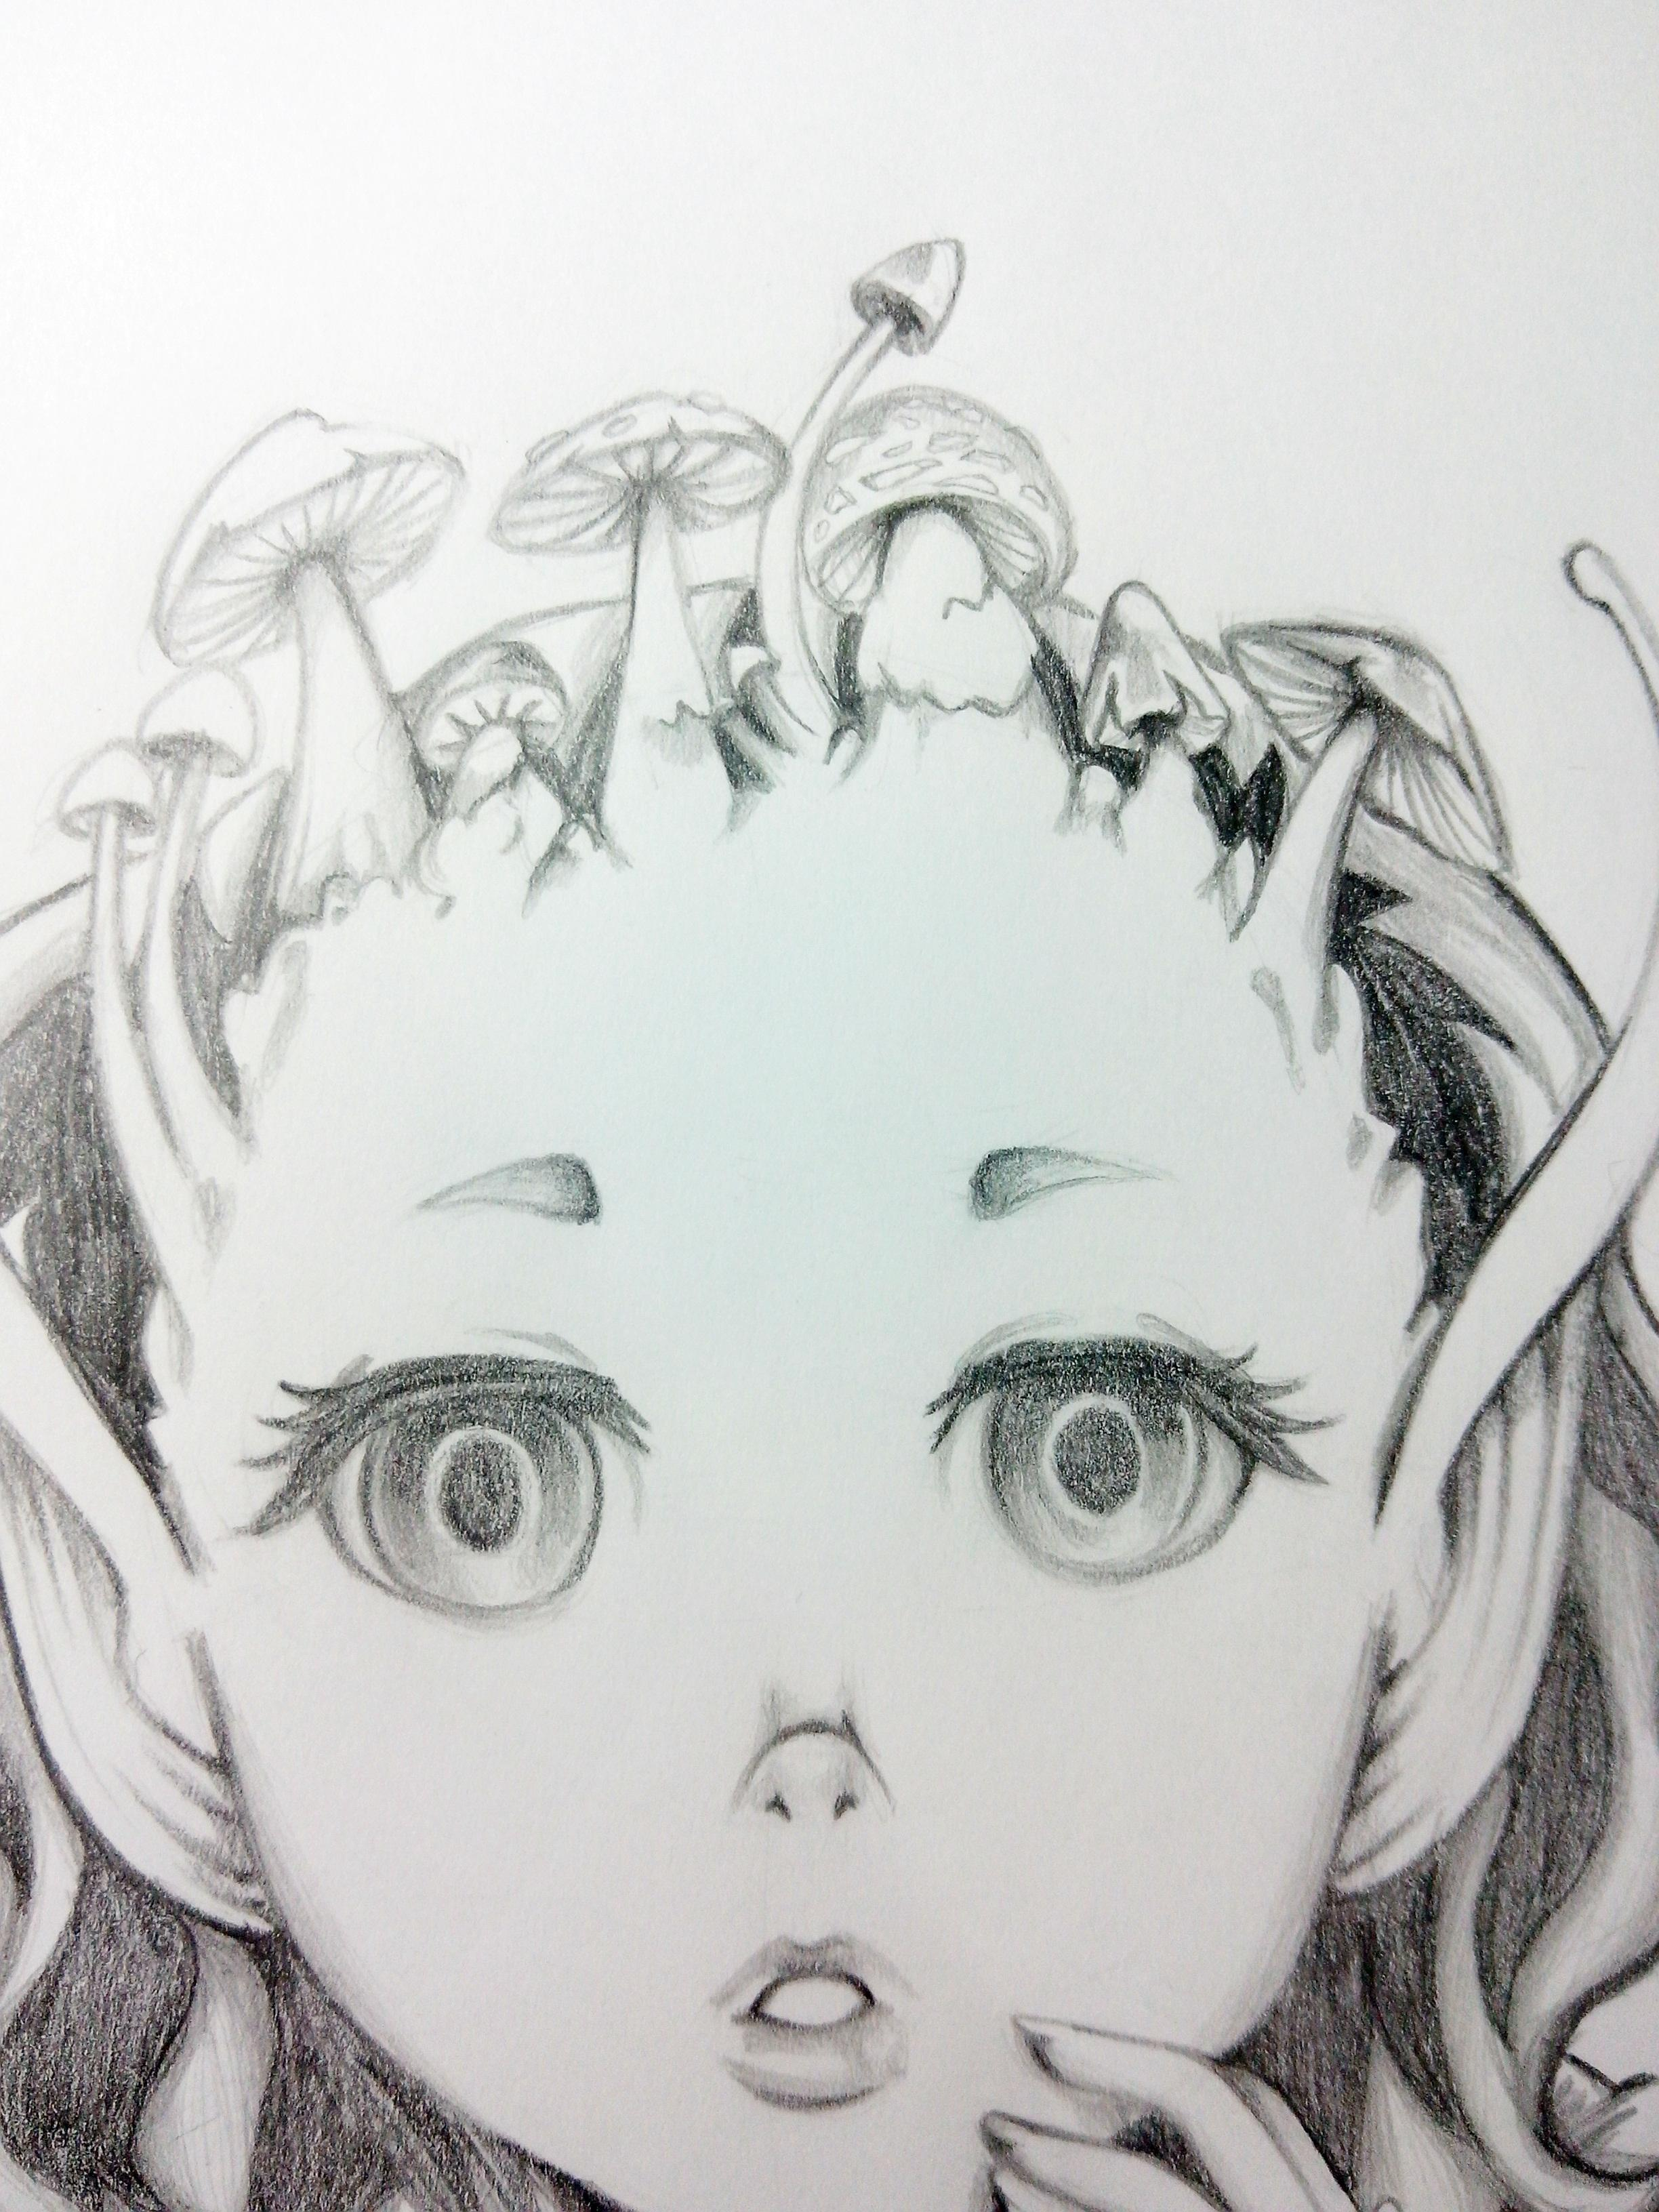 Bat girl with mushrooms topping - image 3 - student project